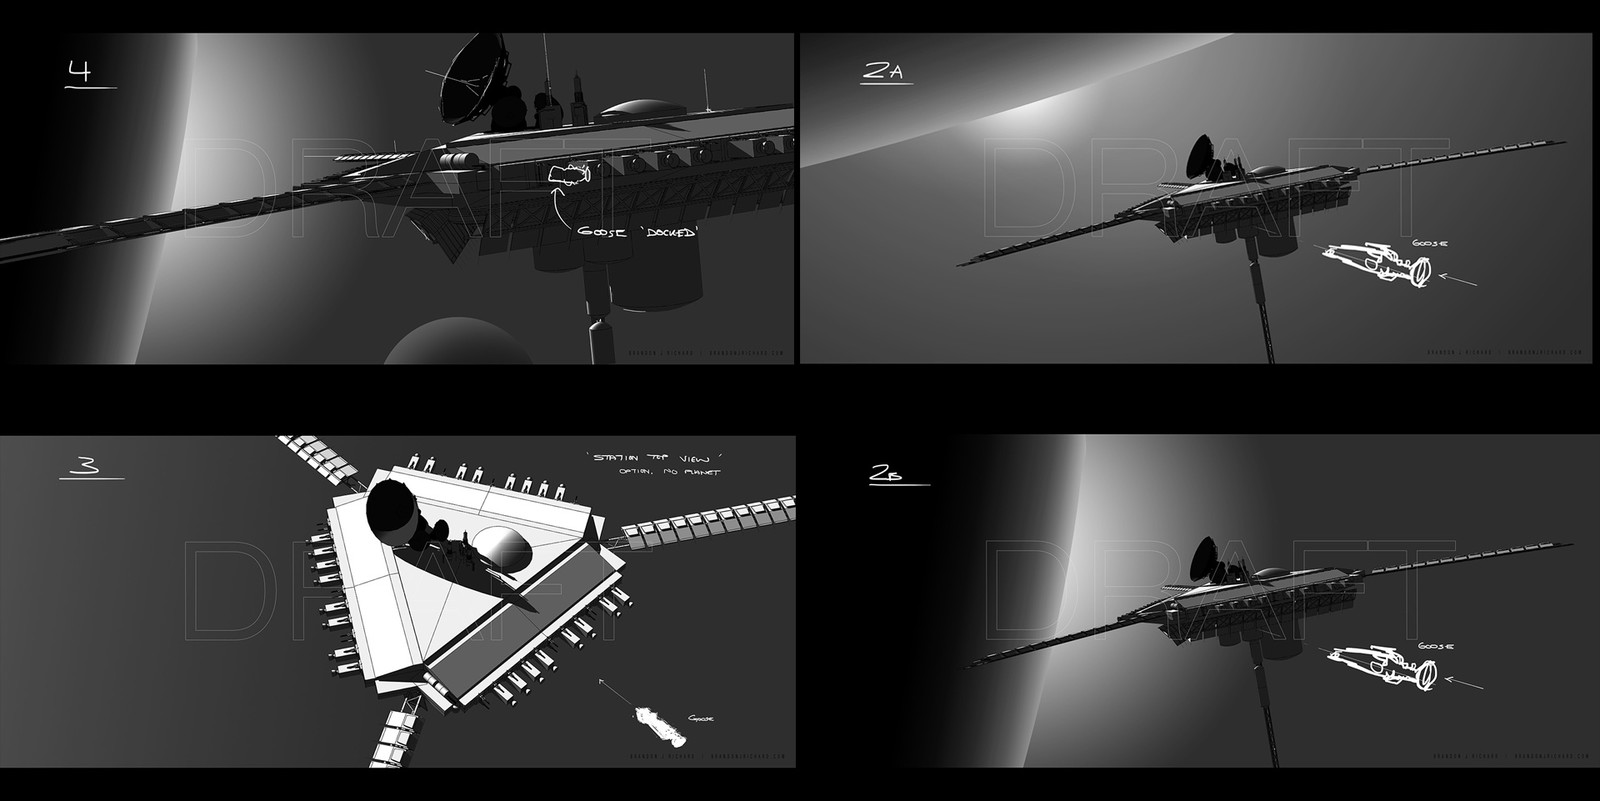 Hybrid composition 'sketches' being as fast as possible using SketchUp and photoshop. Even the most basic shadows from sketchup in this case help to create the intended drama.